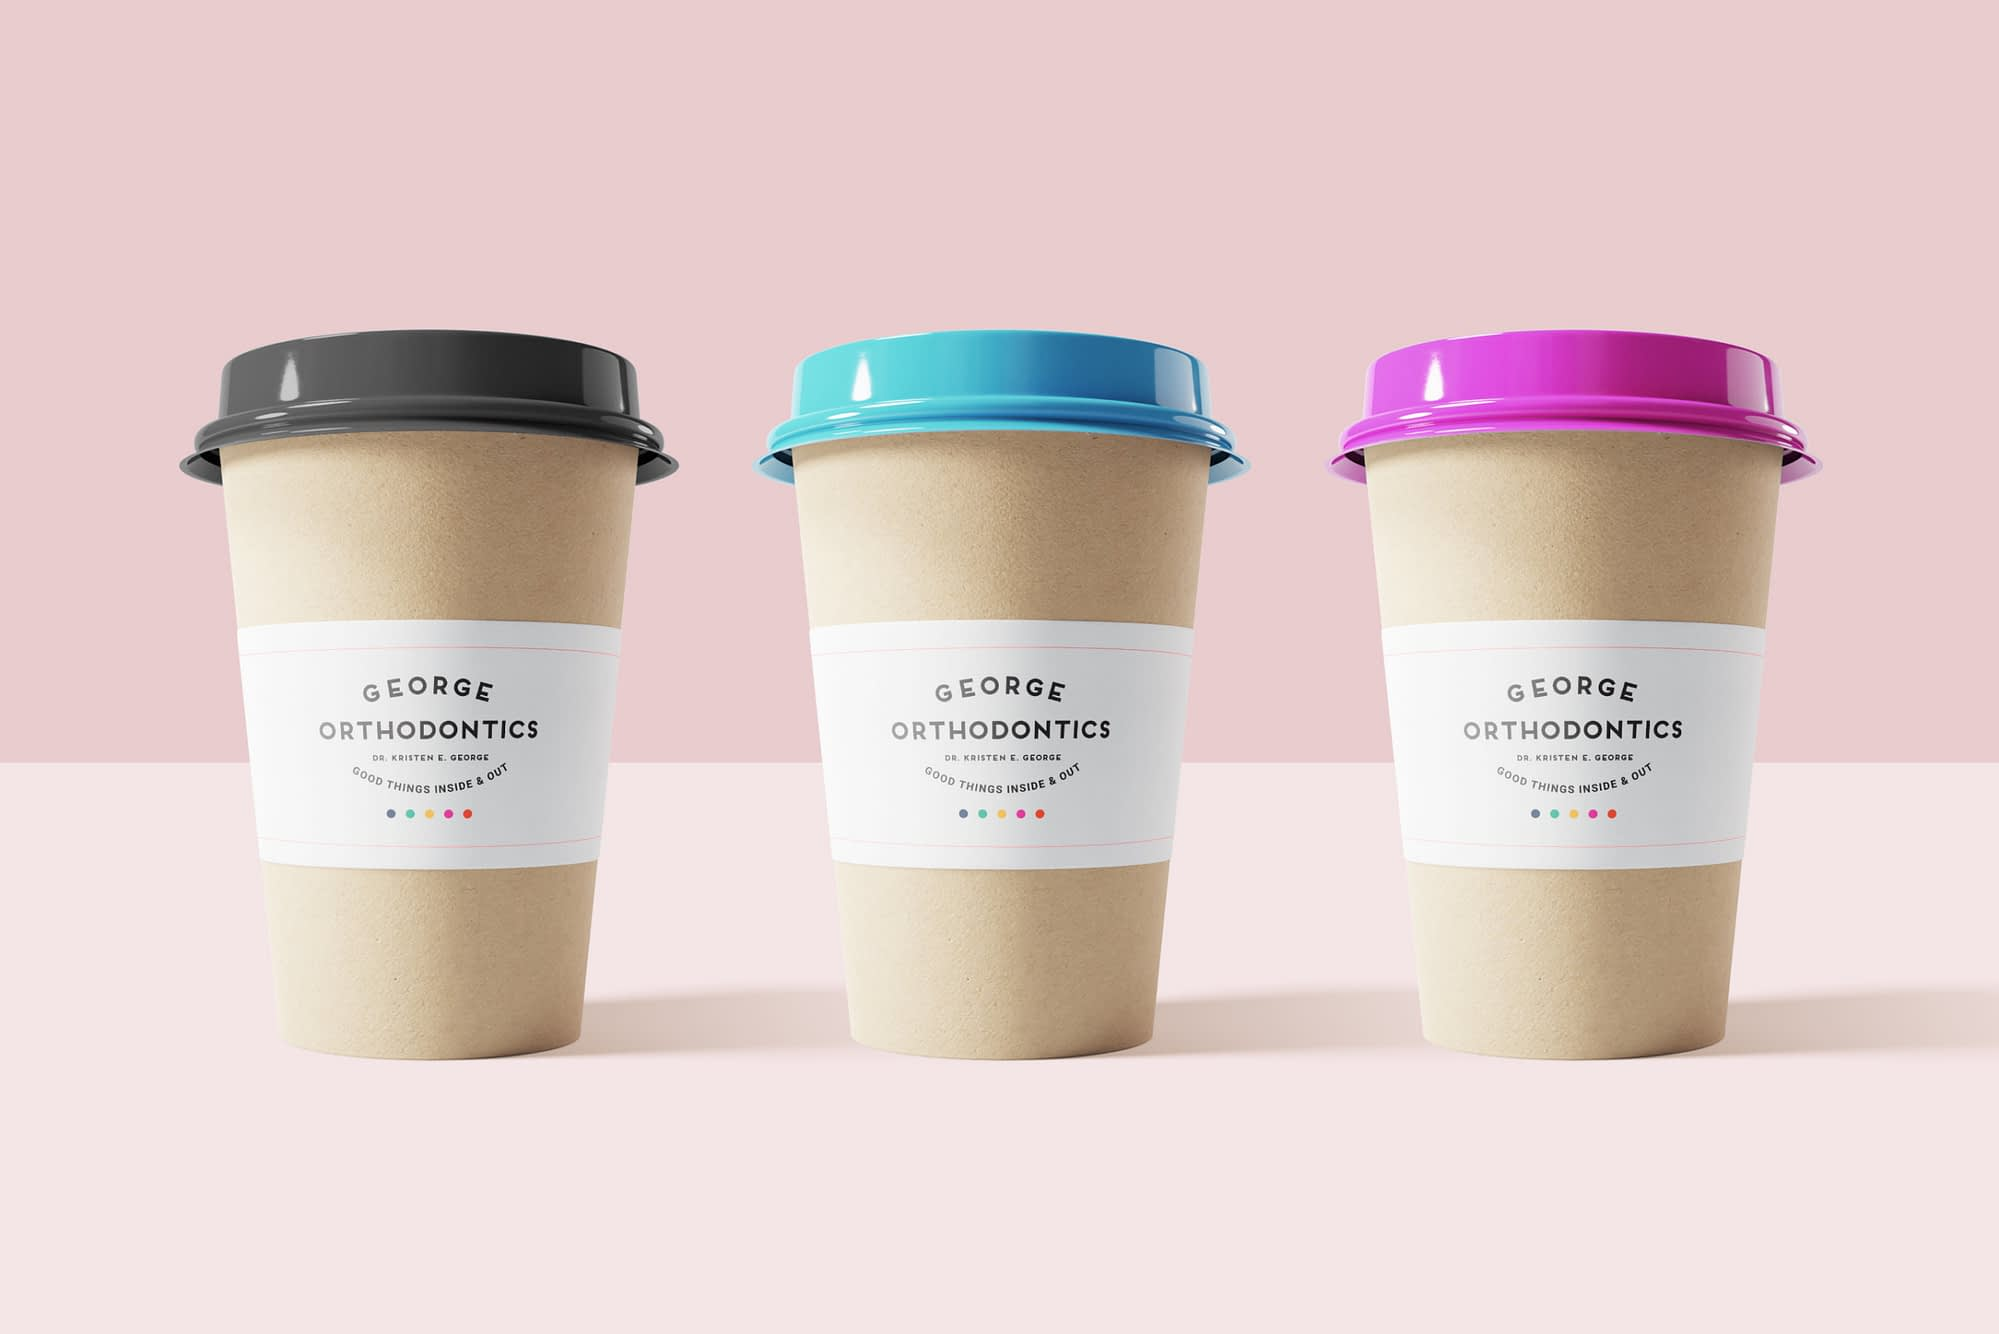 Disposable cup deign for George Orthodontics branding and logo design - gold creative design, llc